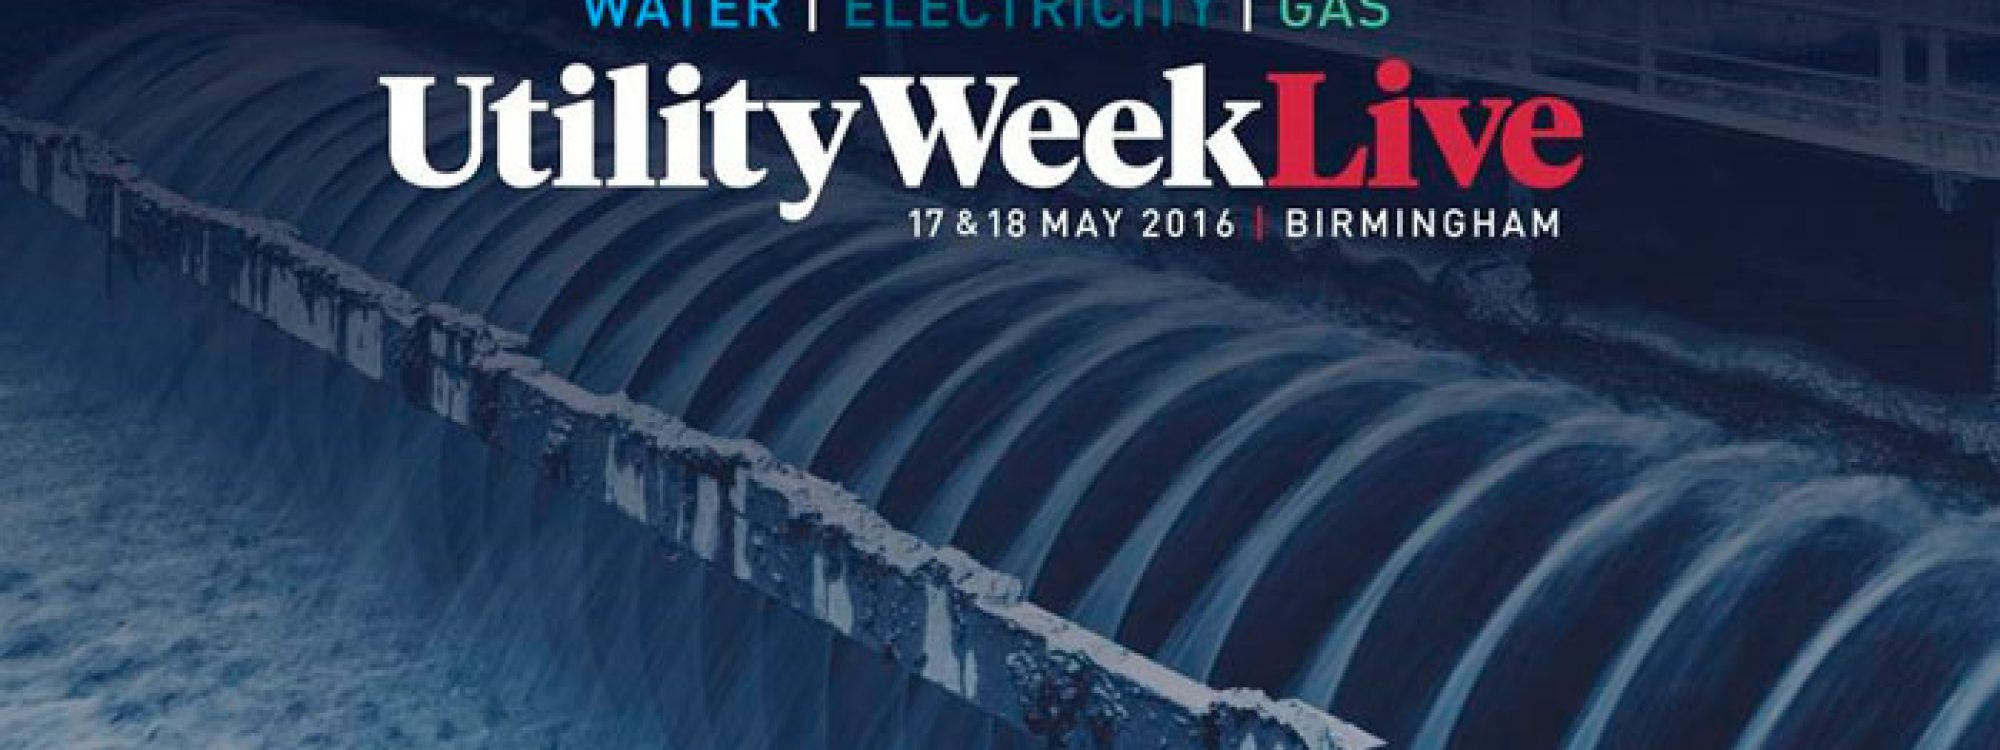 Content Guru to Electrify Customer Engagement at Utility Week Live